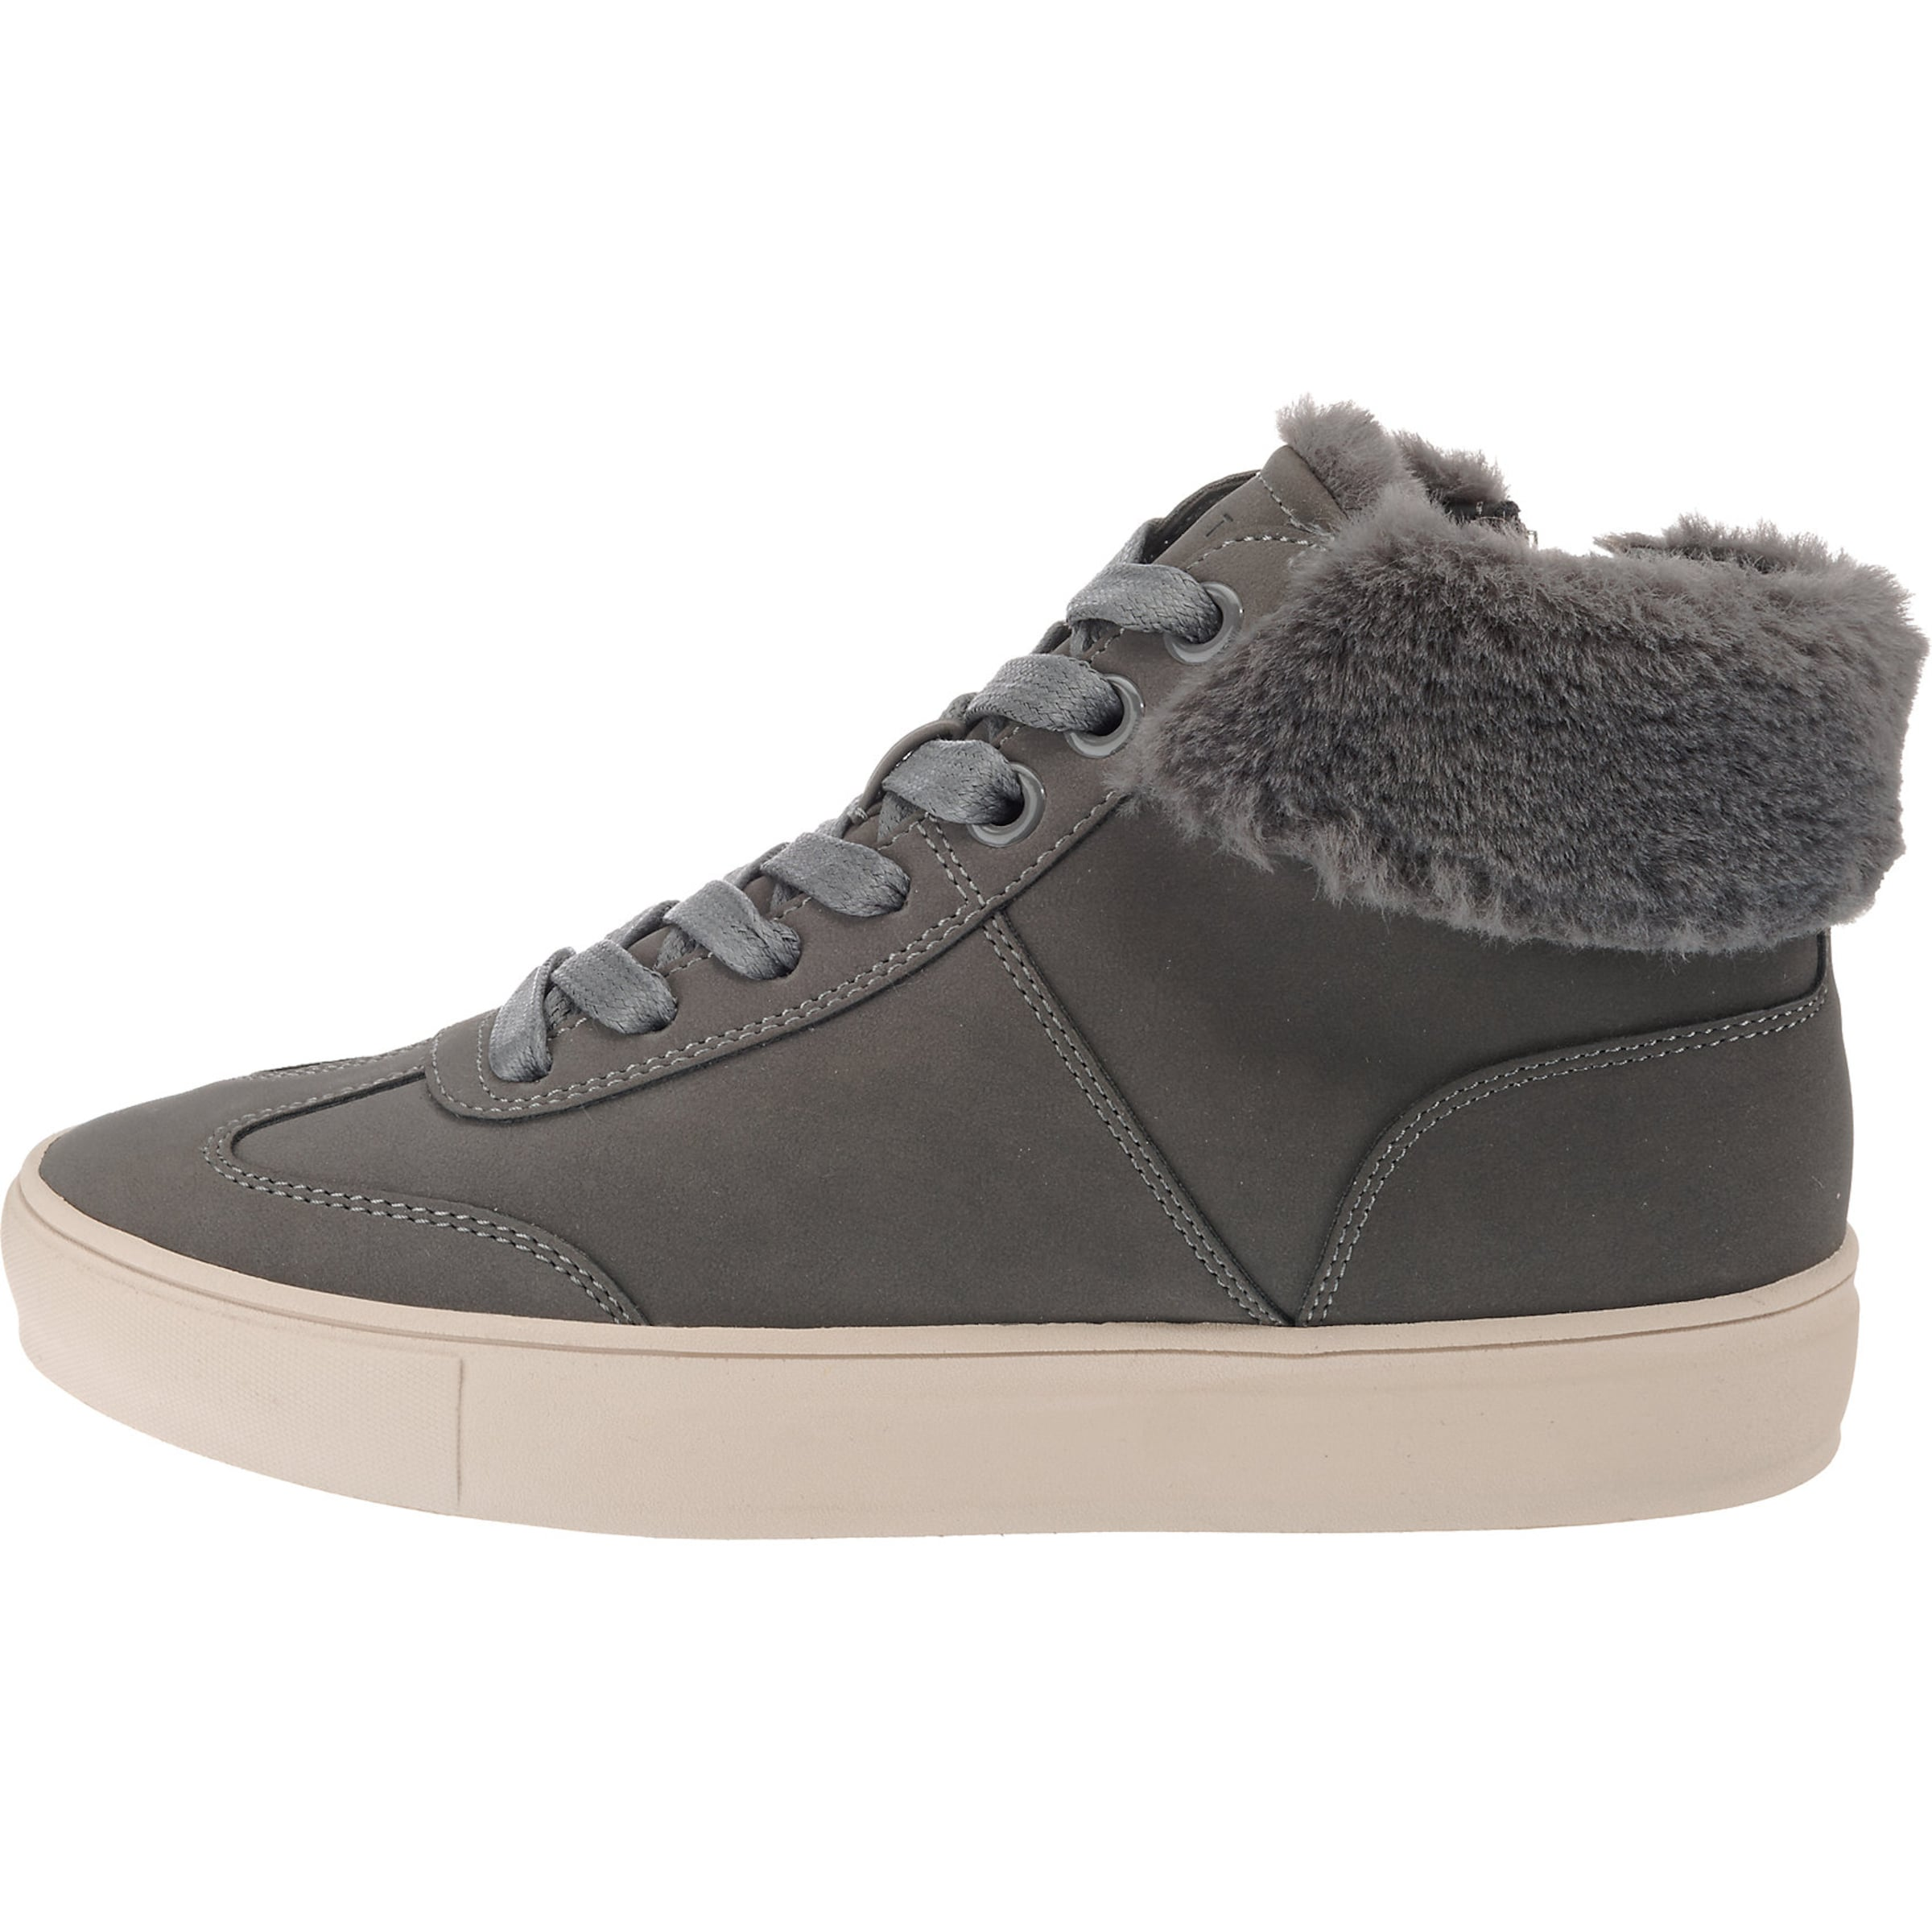 Sneakers Grau High Esprit In 'colette' f7b6Ygvy